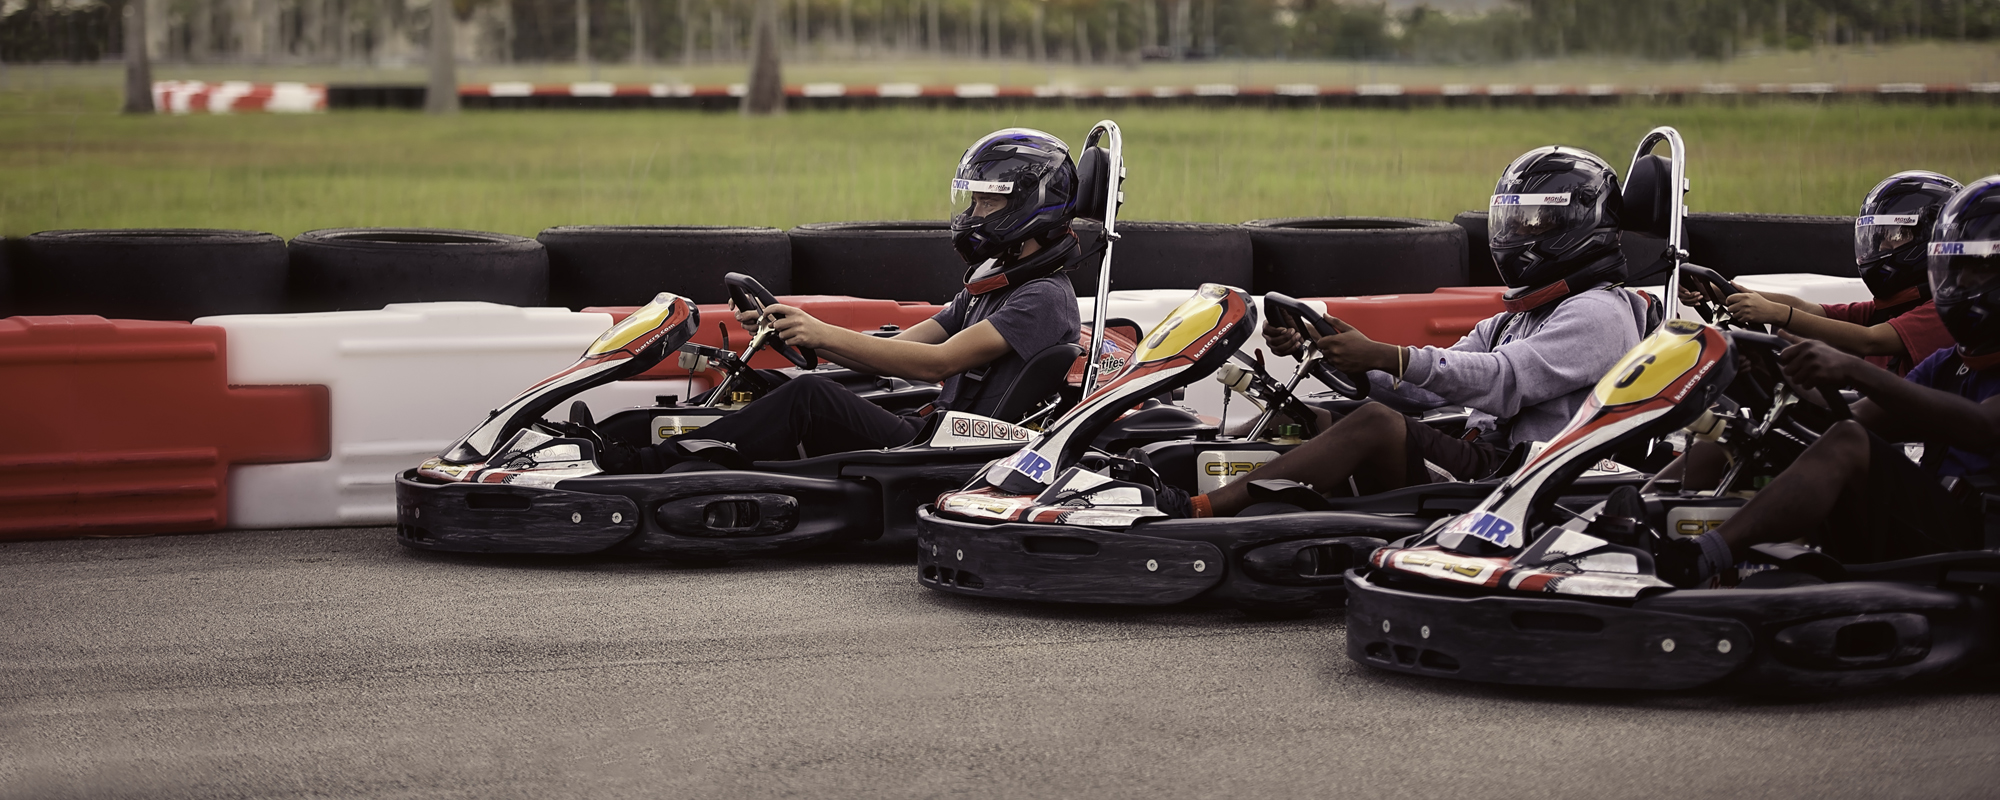 45 MPH Arrive-and-Drive Karting